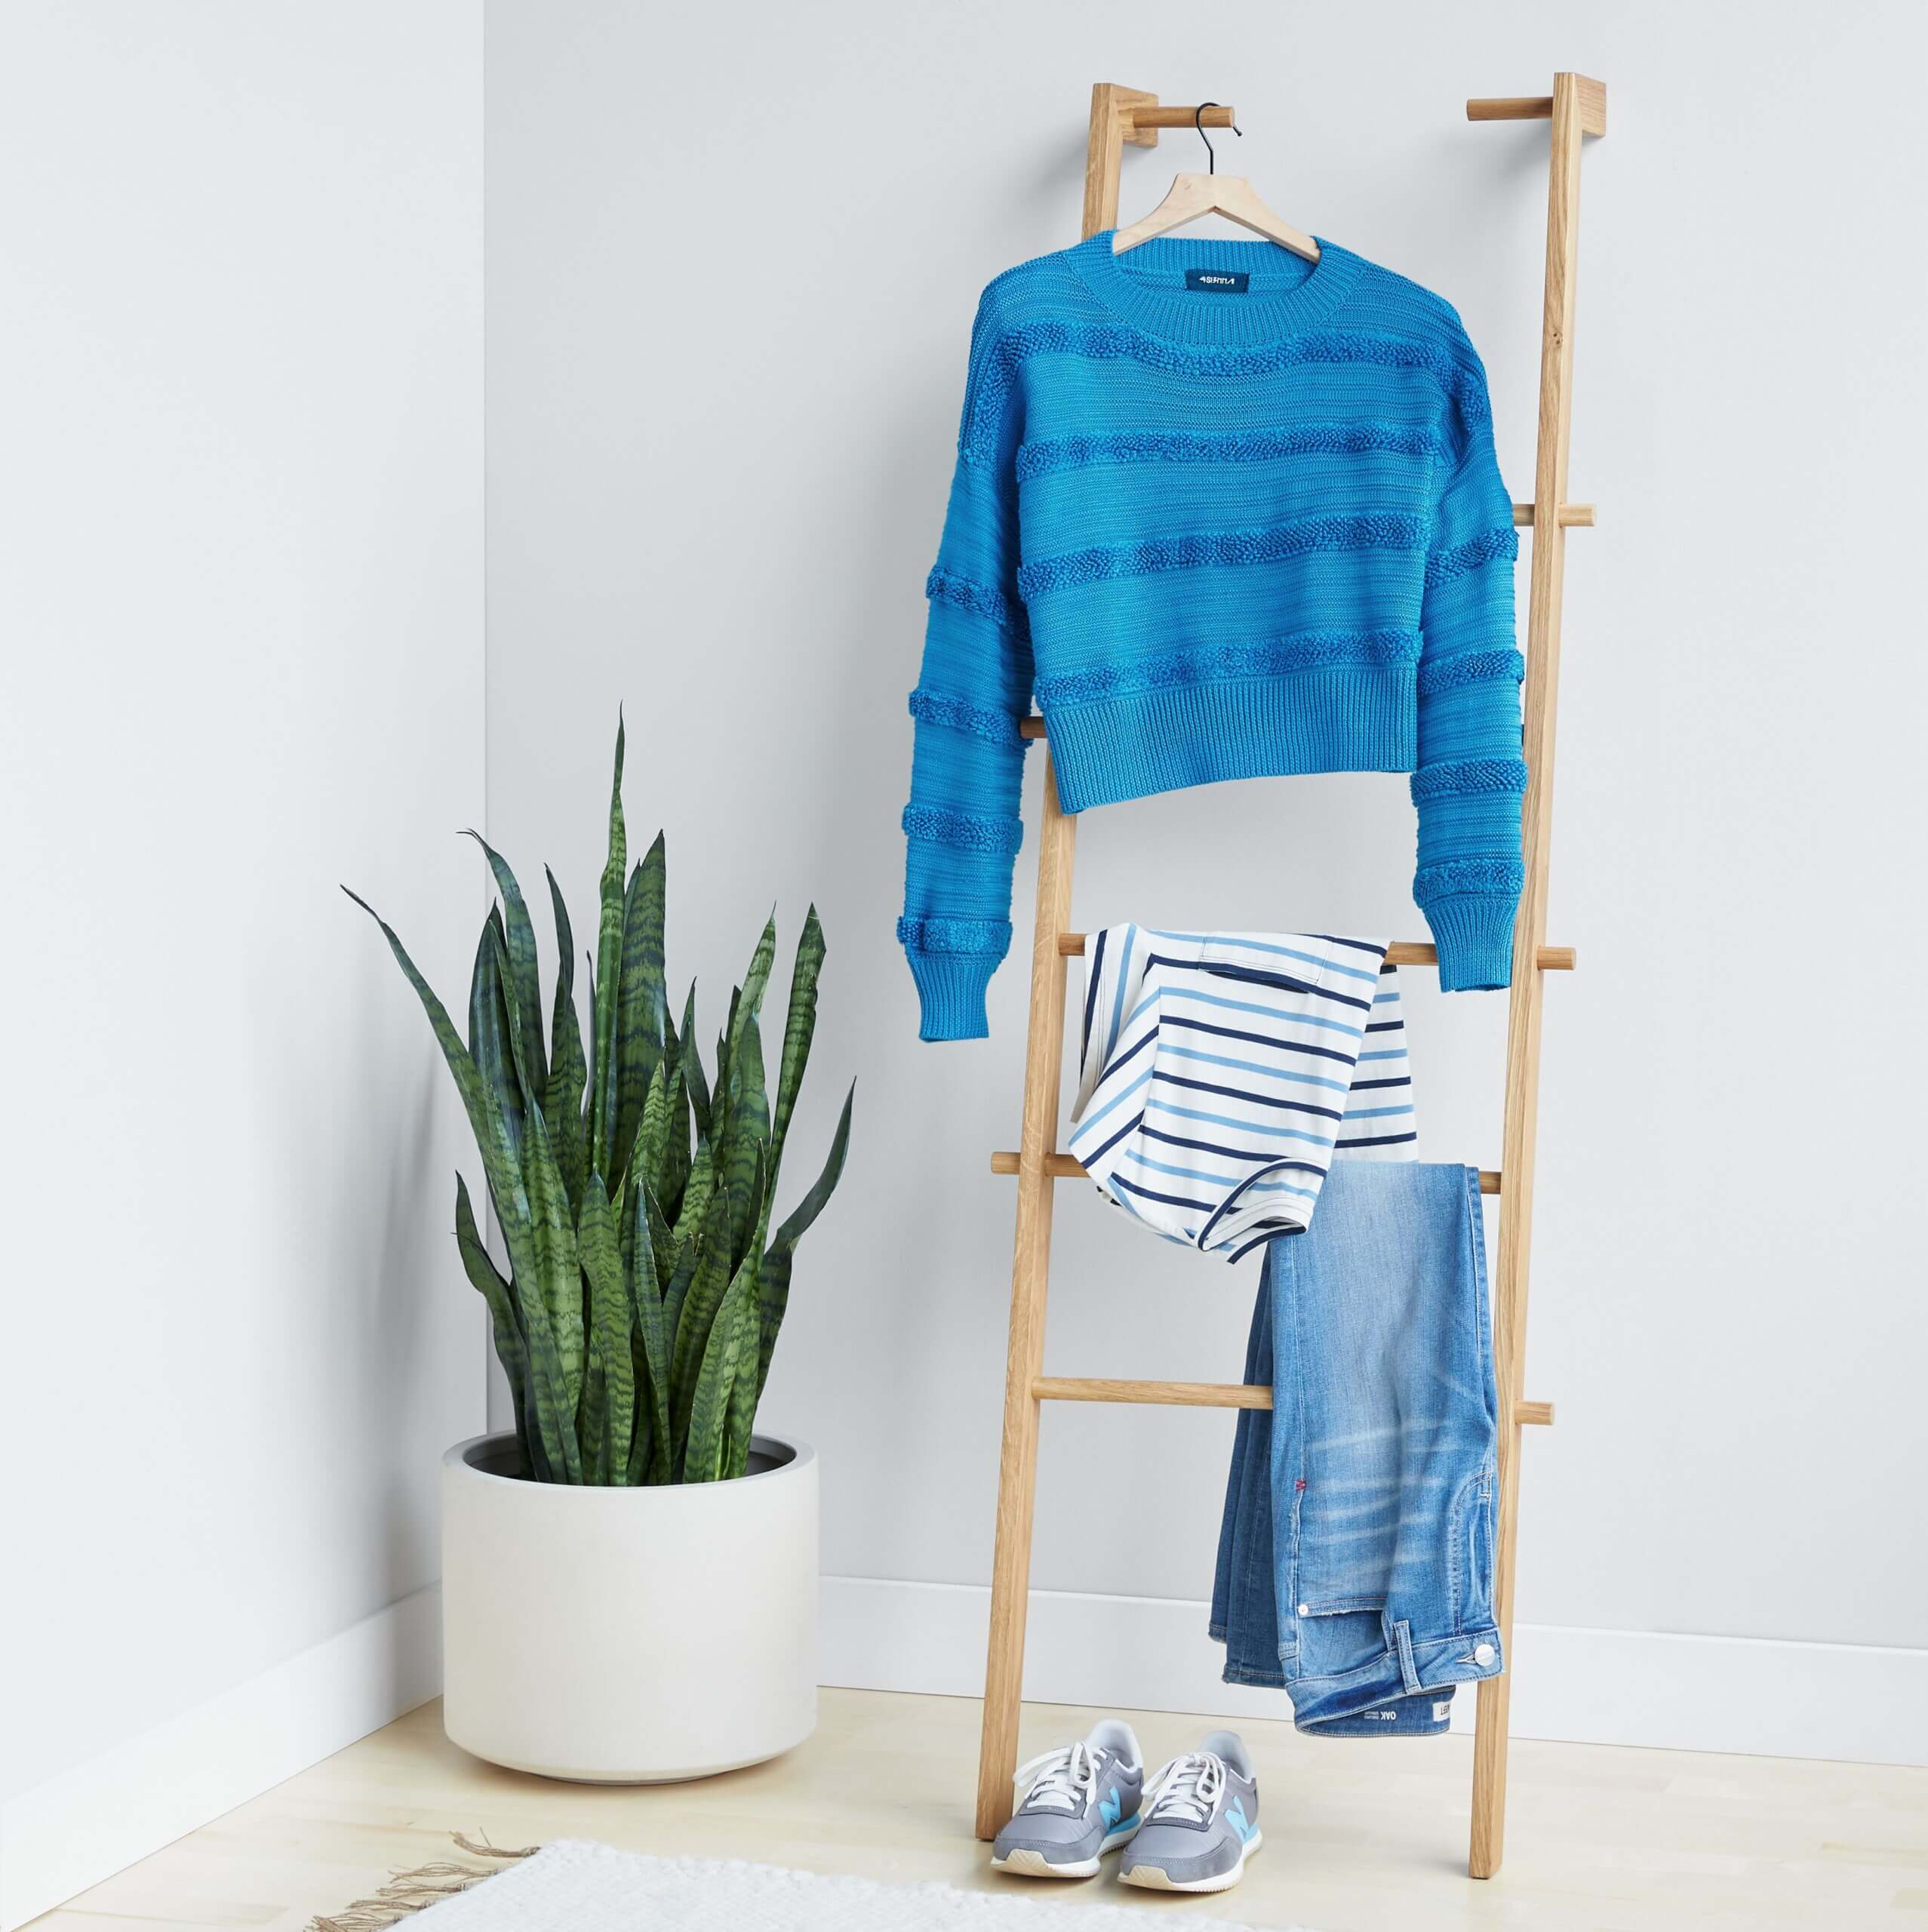 Stitch Fix women's outfit featuring blue textured pullover sweater, white and blue striped shirt and blue jeans hanging on wooden ladder, next to blue sneakers.